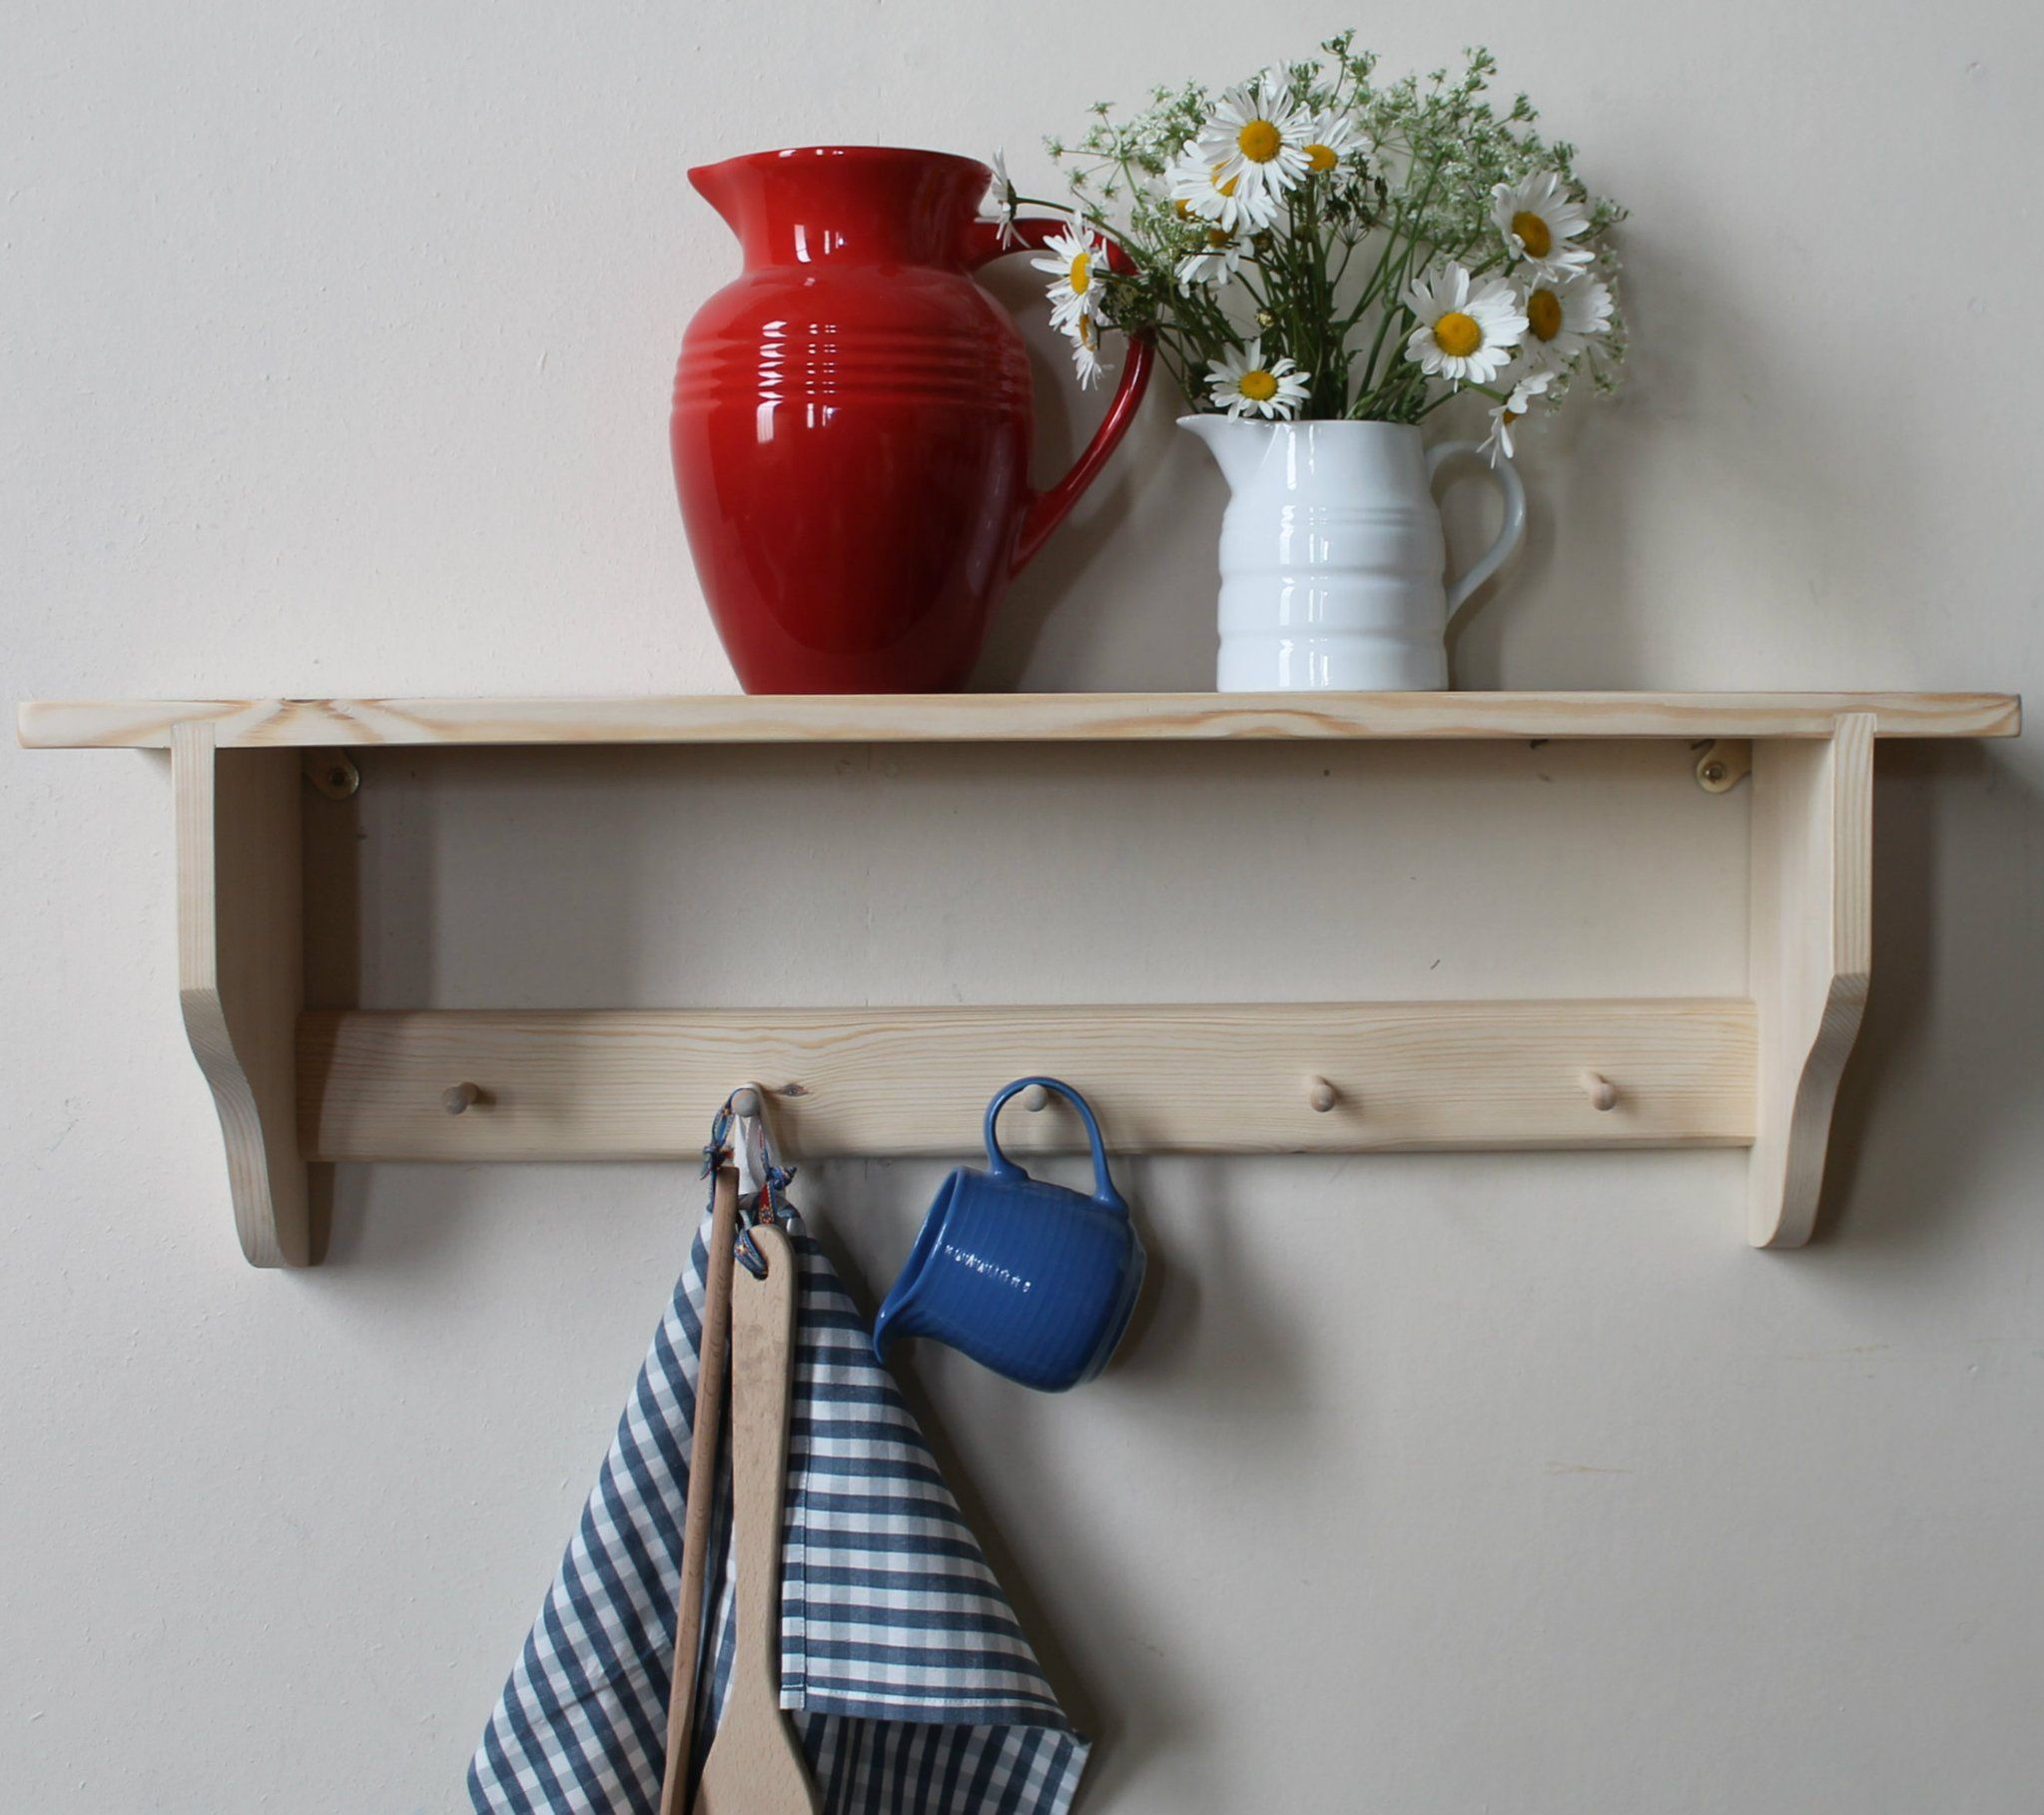 SHAKER 1 shelf with small pegs (With images) Shelves